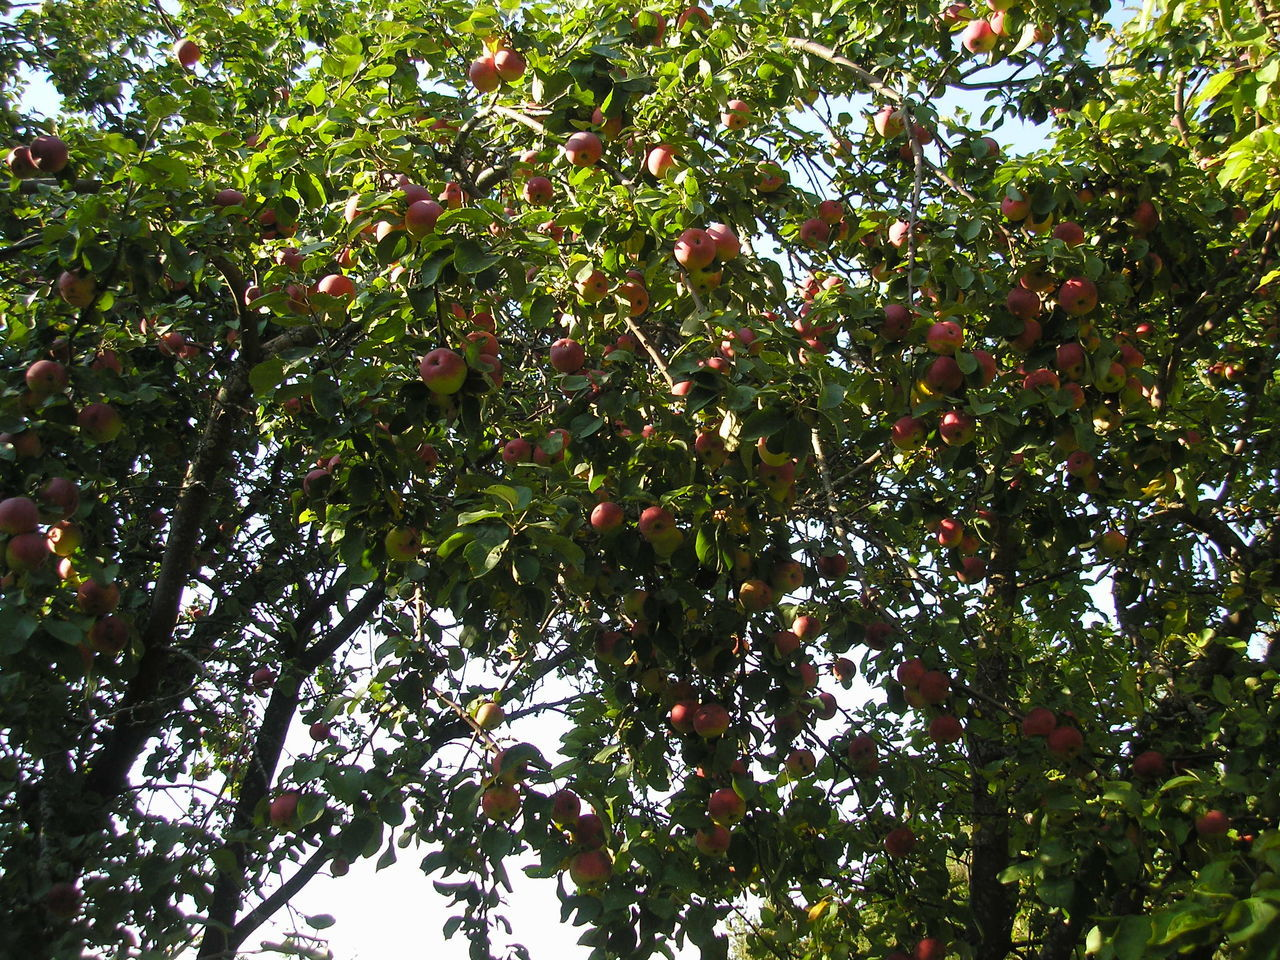 fruit, tree, food and drink, growth, low angle view, nature, branch, food, outdoors, day, leaf, beauty in nature, freshness, healthy eating, green color, no people, red